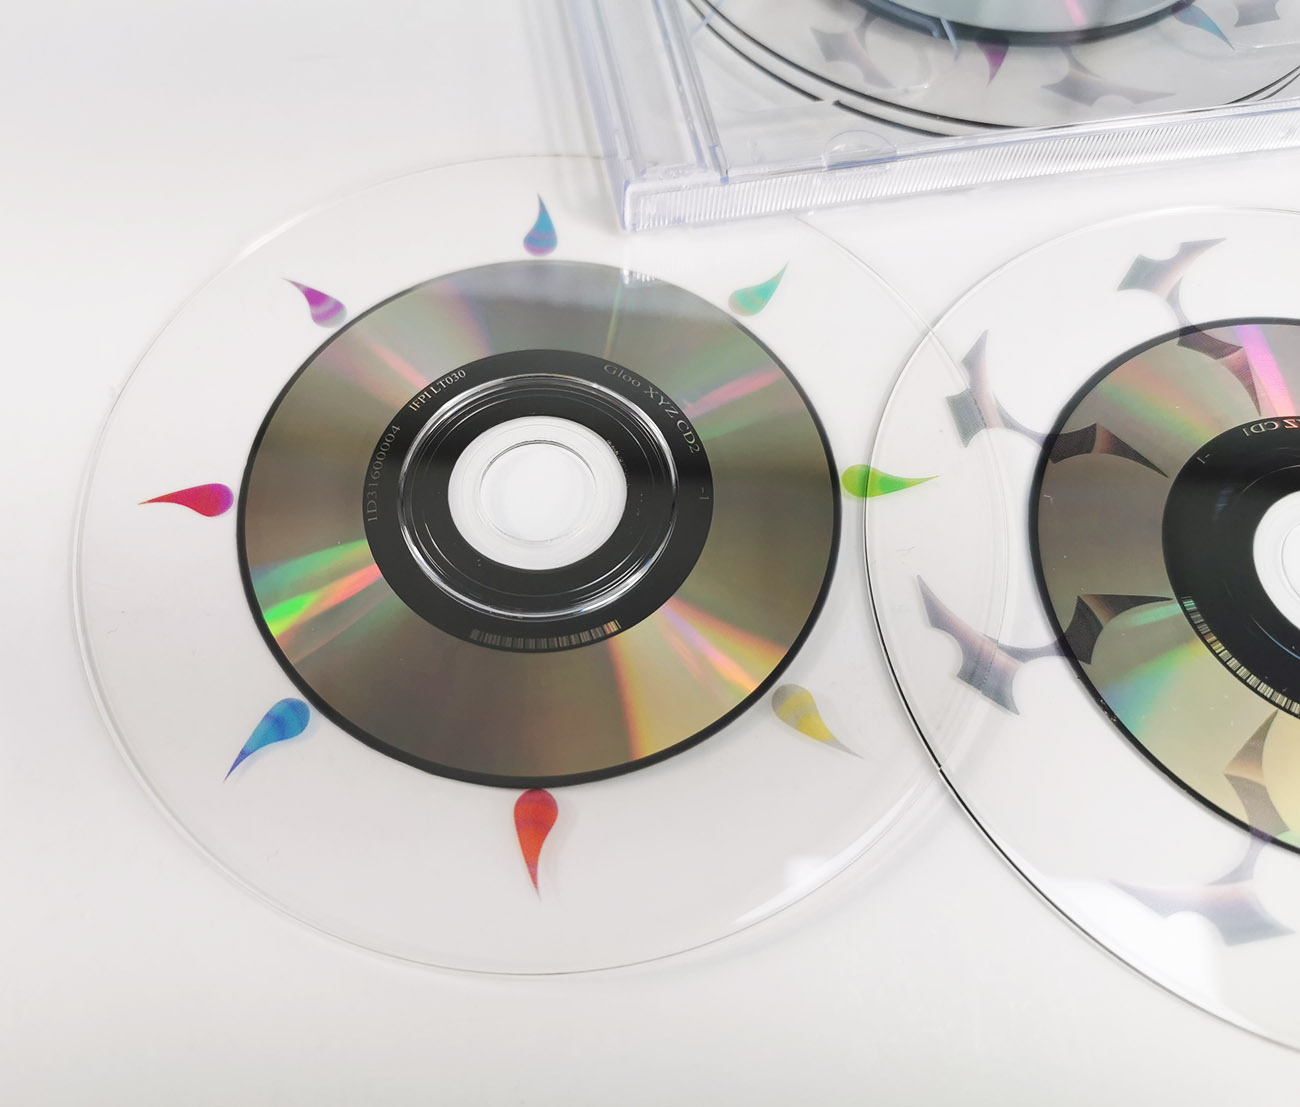 A double CD set with two full size 12cm CDs that only have an 8cm data ring and clear plastic outside